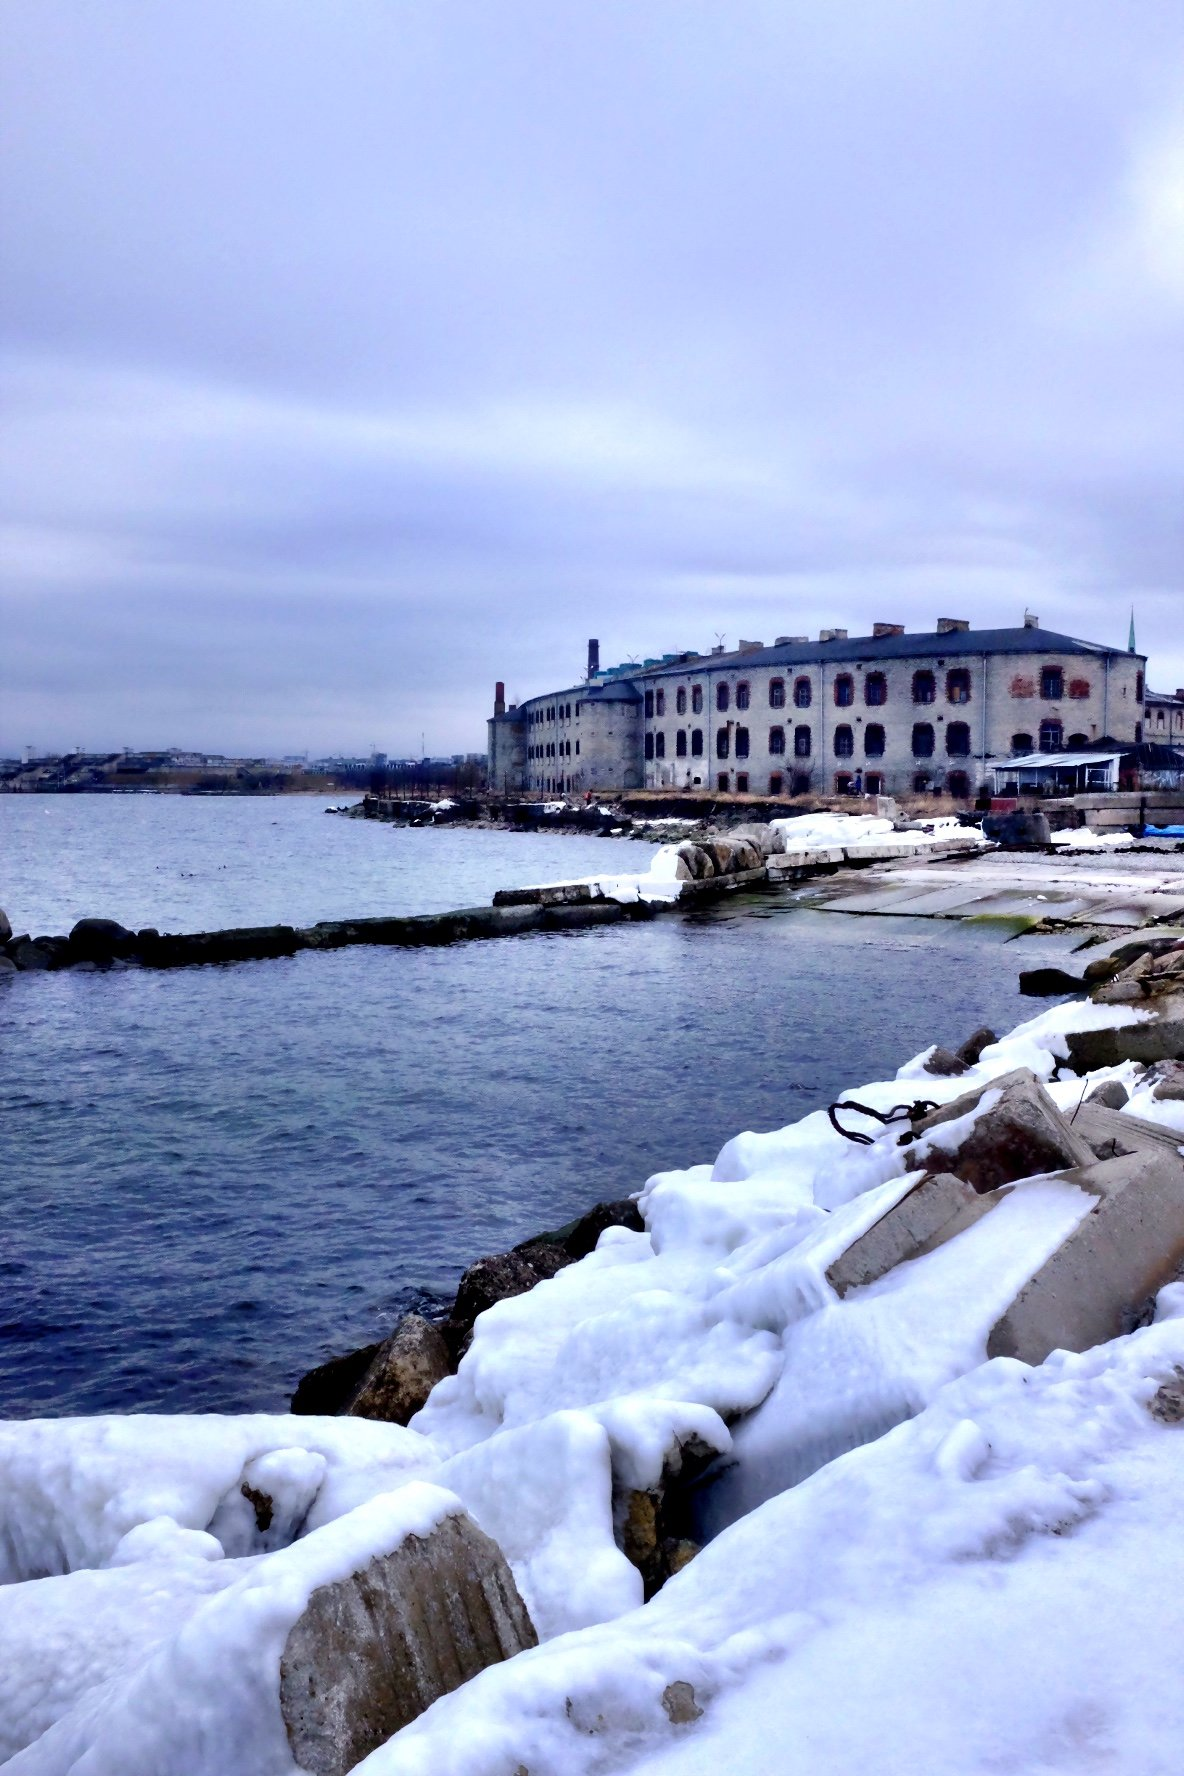 Snowy Coast at the Seaplane Museum in Tallinn